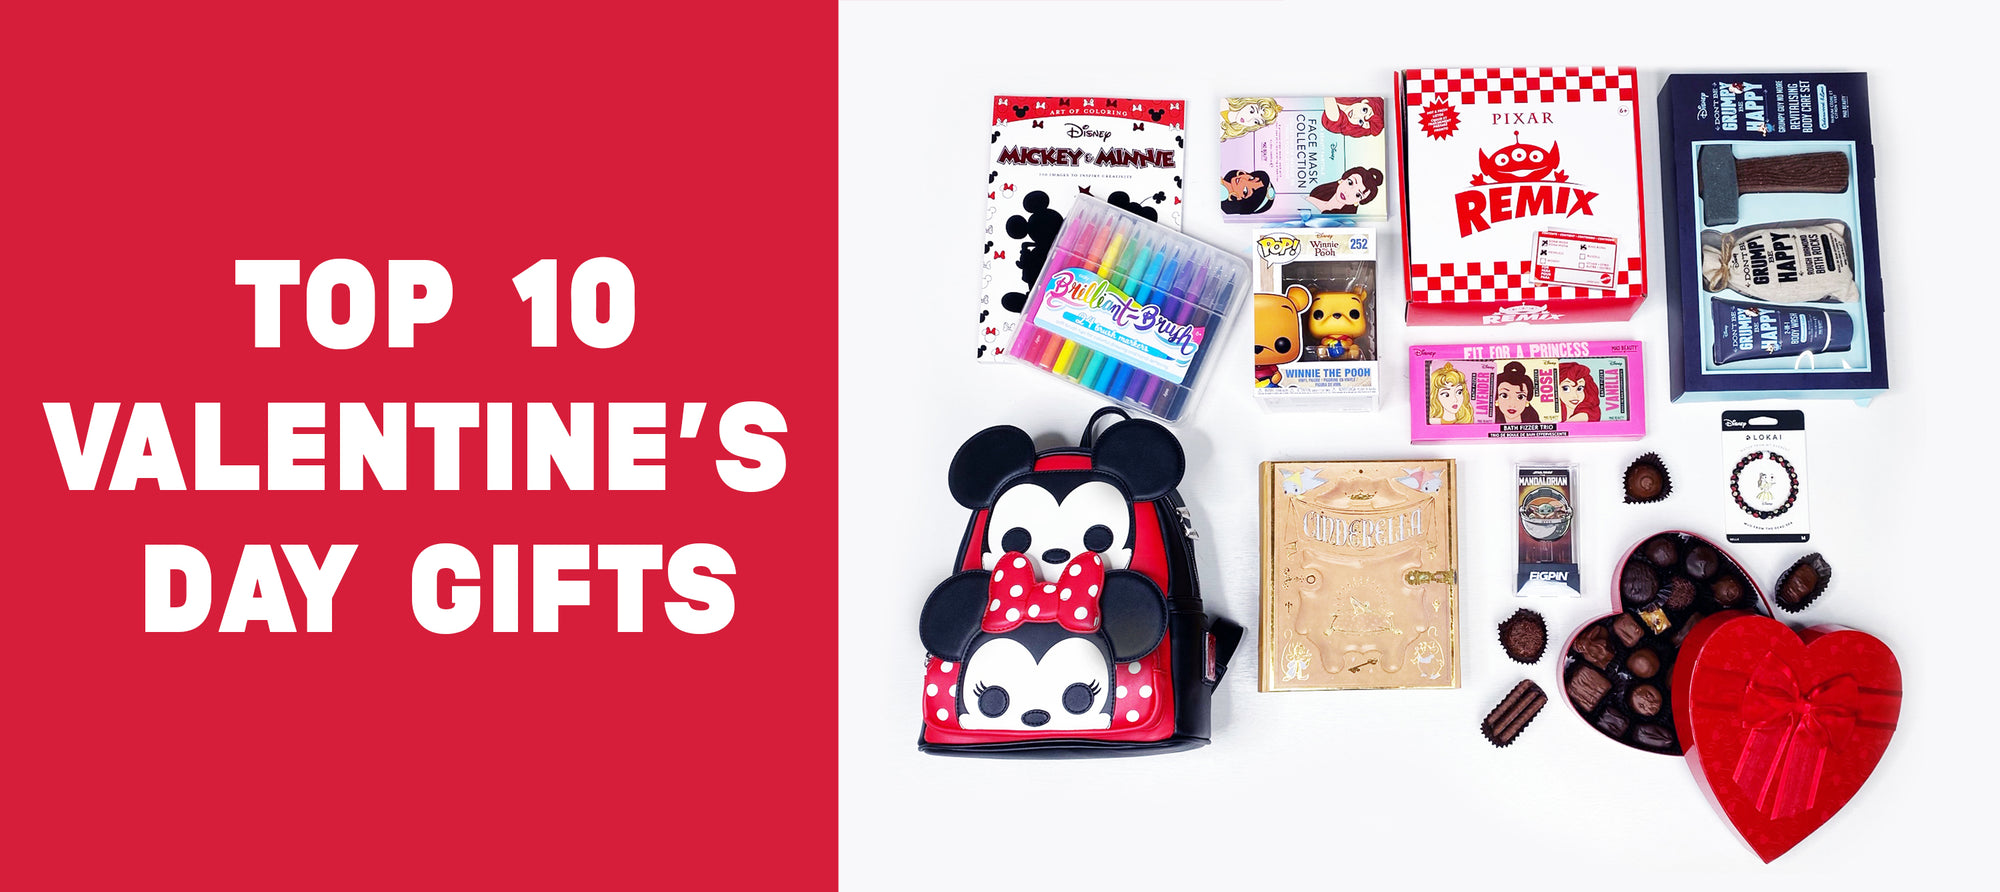 Top 10 Valentine's Day Gifts